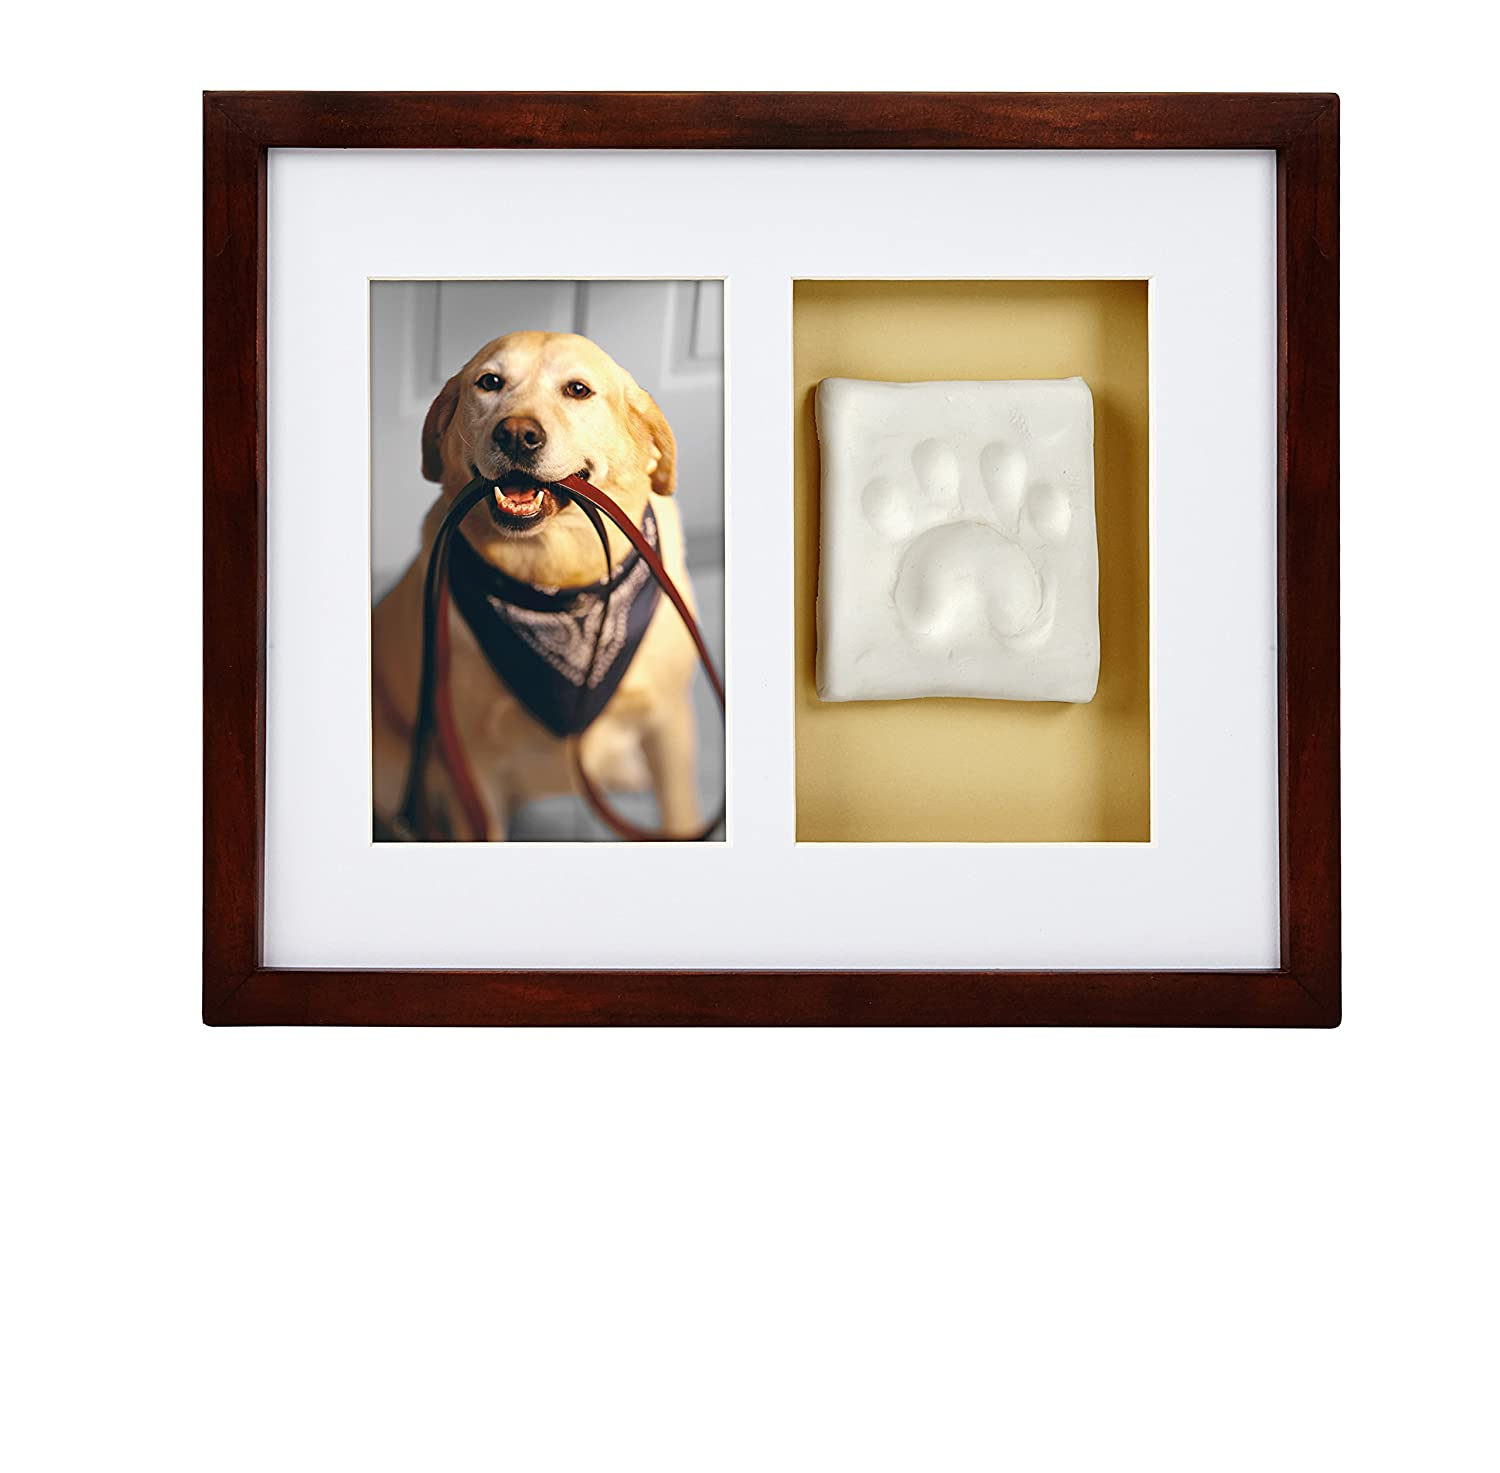 Pearhead Dog Or Cat Paw Prints Pet Wall Frame With Clay Imprint Kit Perfect Pet Keepsake Espresso